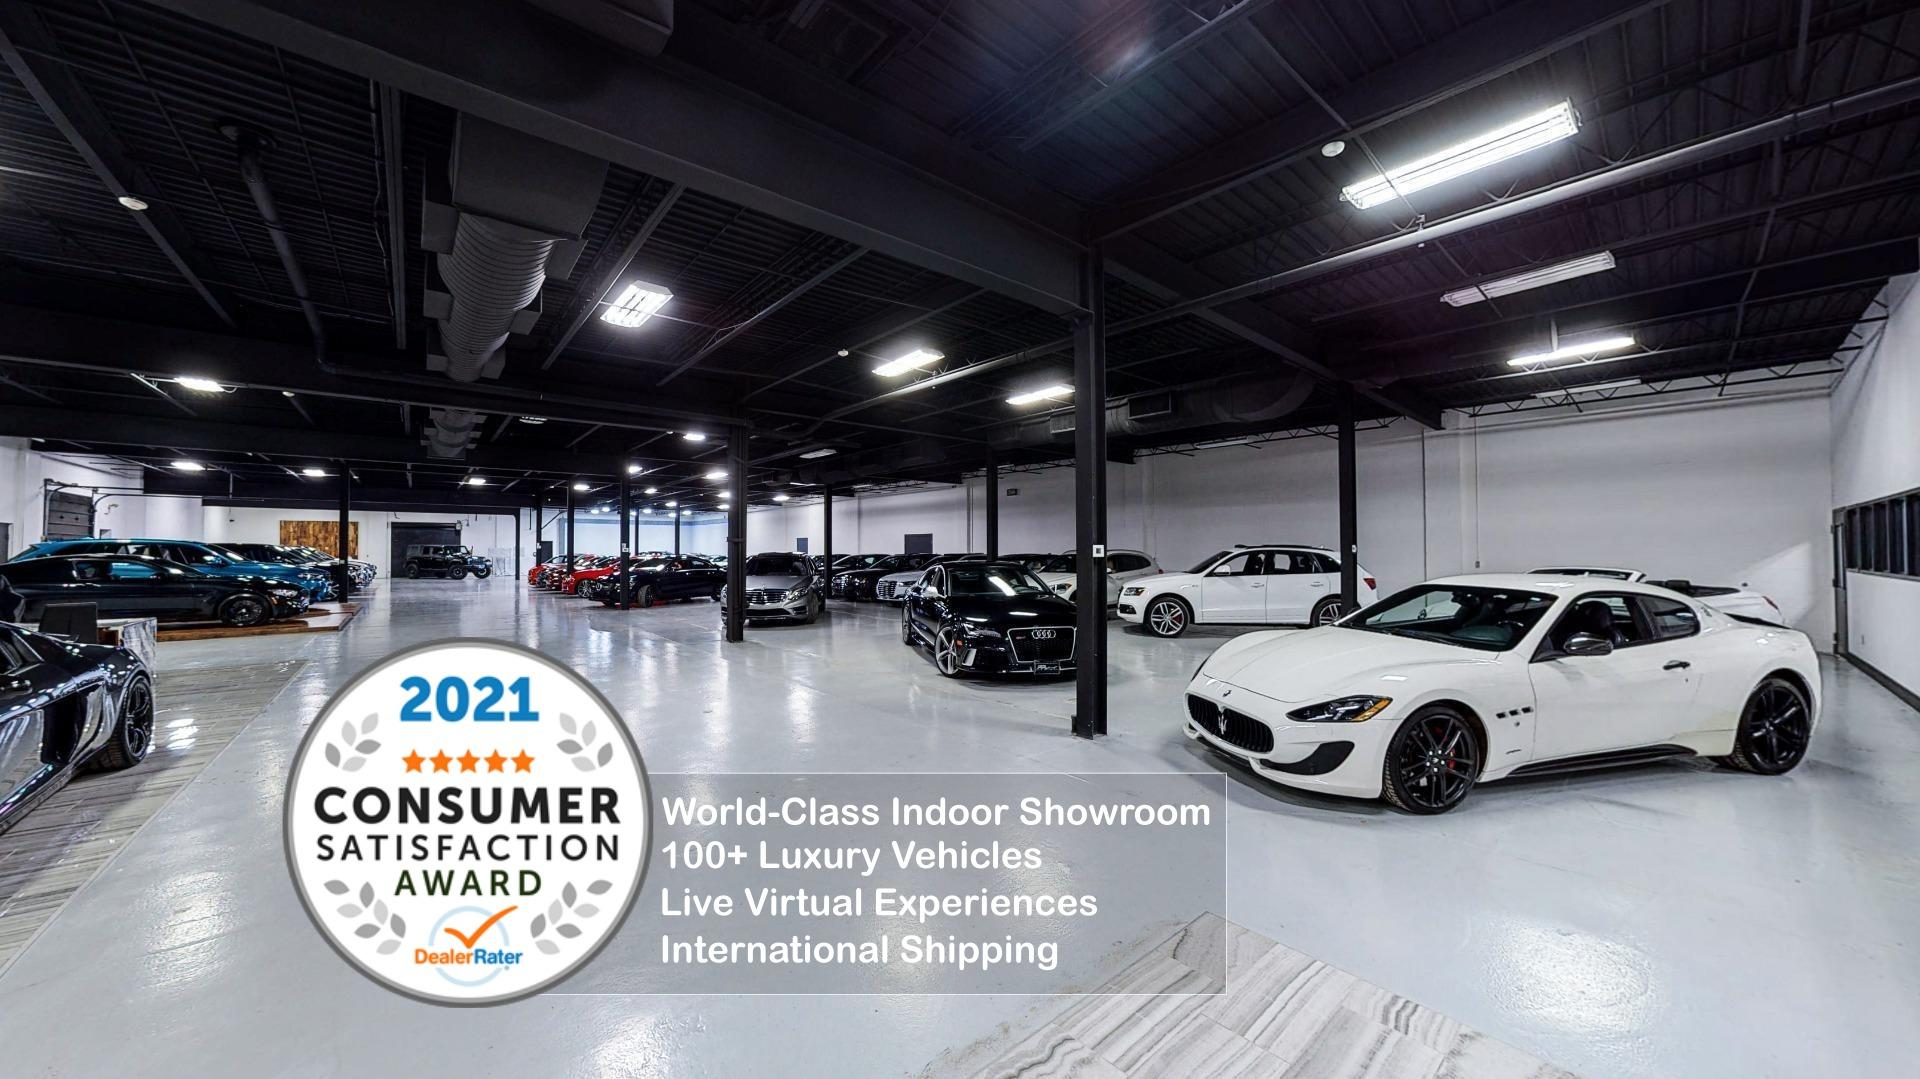 Used 2017 Land Rover Discovery Sport HSE Luxury for sale $30,895 at Perfect Auto Collection in Akron OH 44310 3